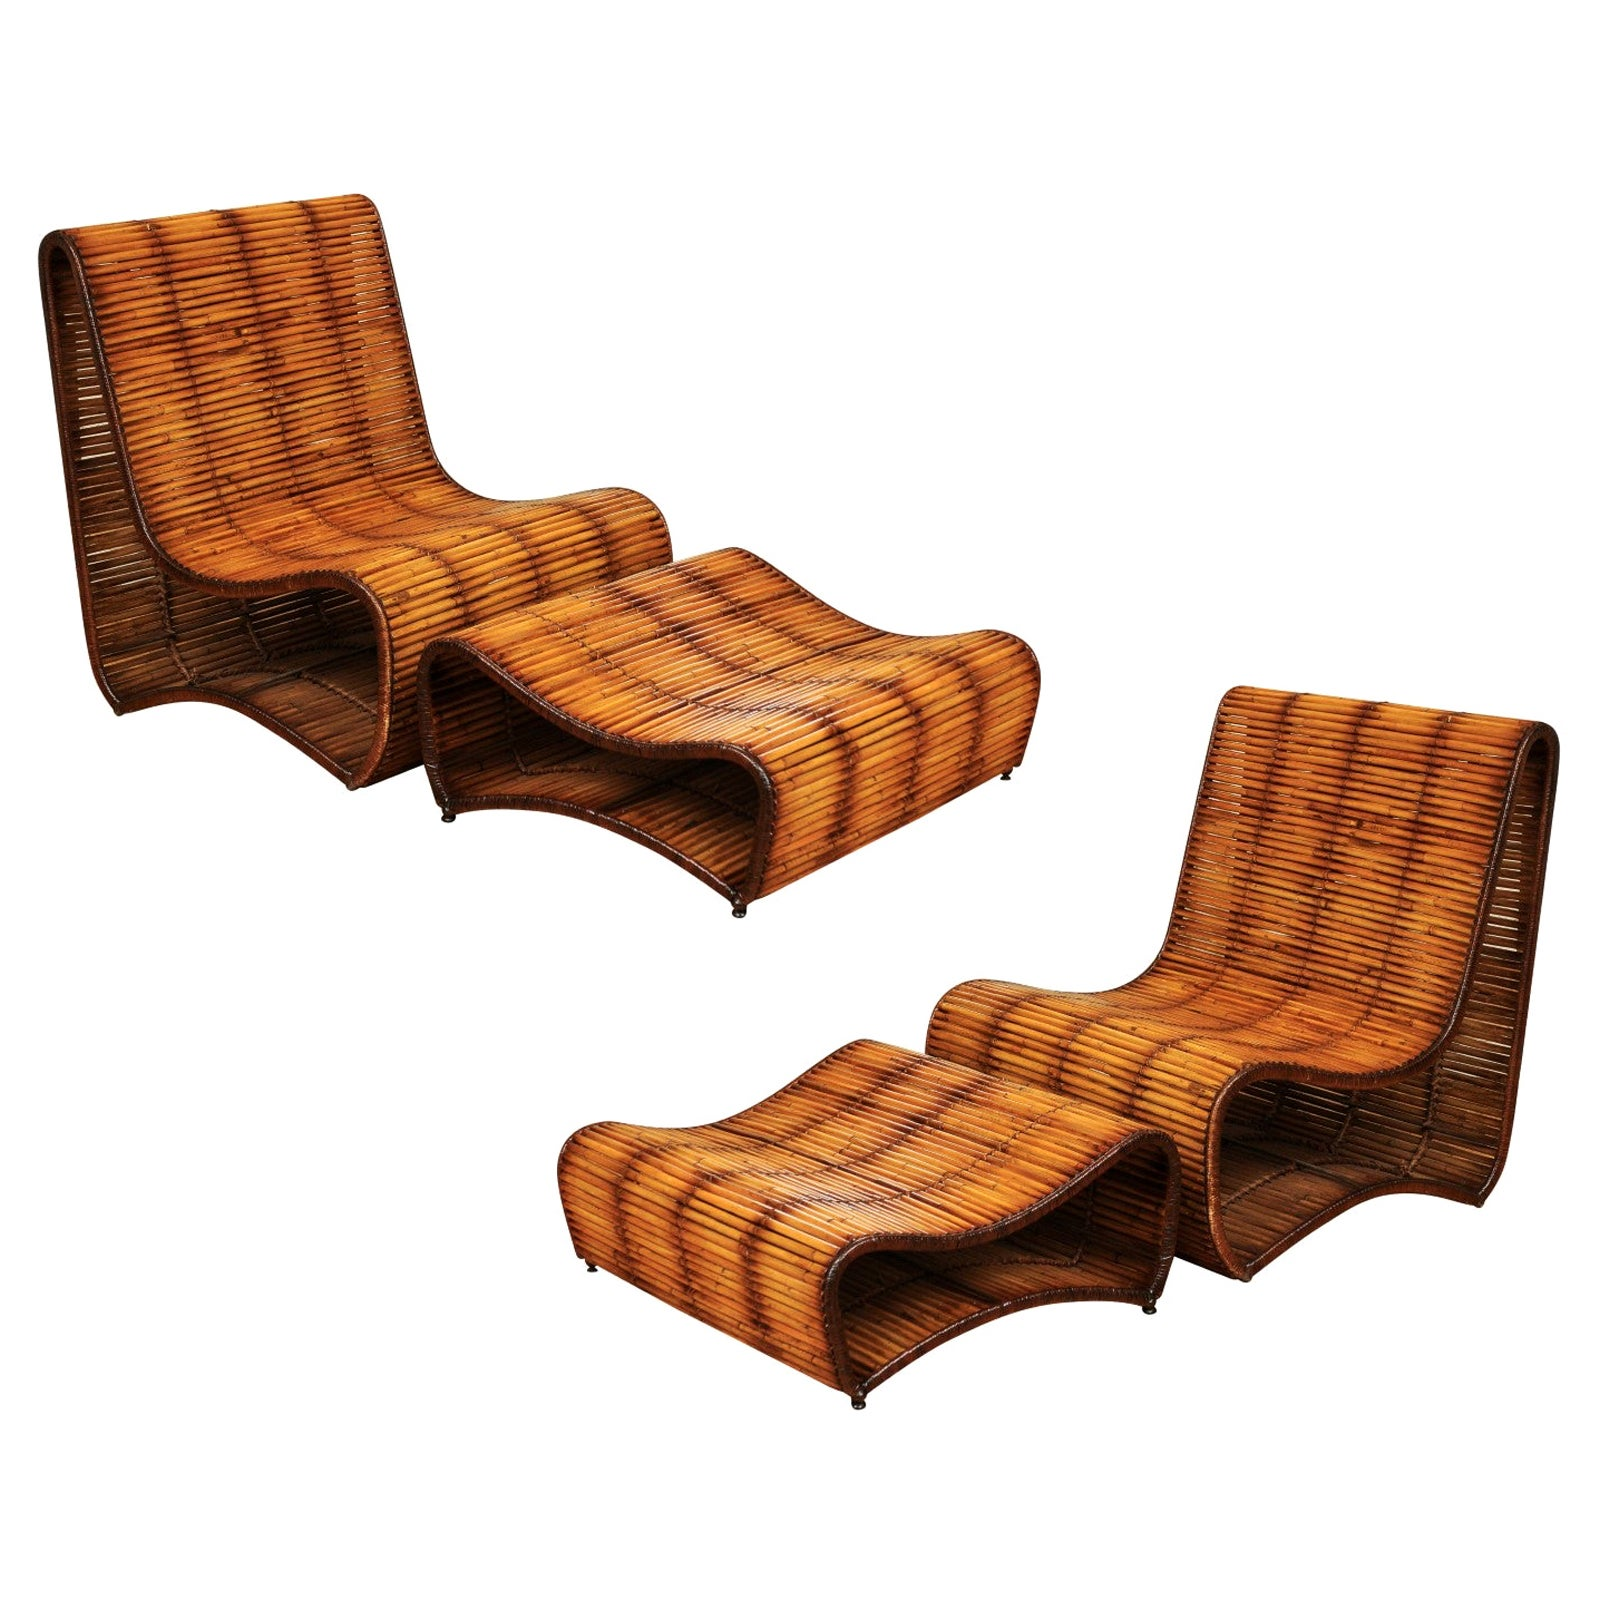 Incredible Wave Lounge Chair and Ottoman Pair by Danny Ho Fong, circa 1970